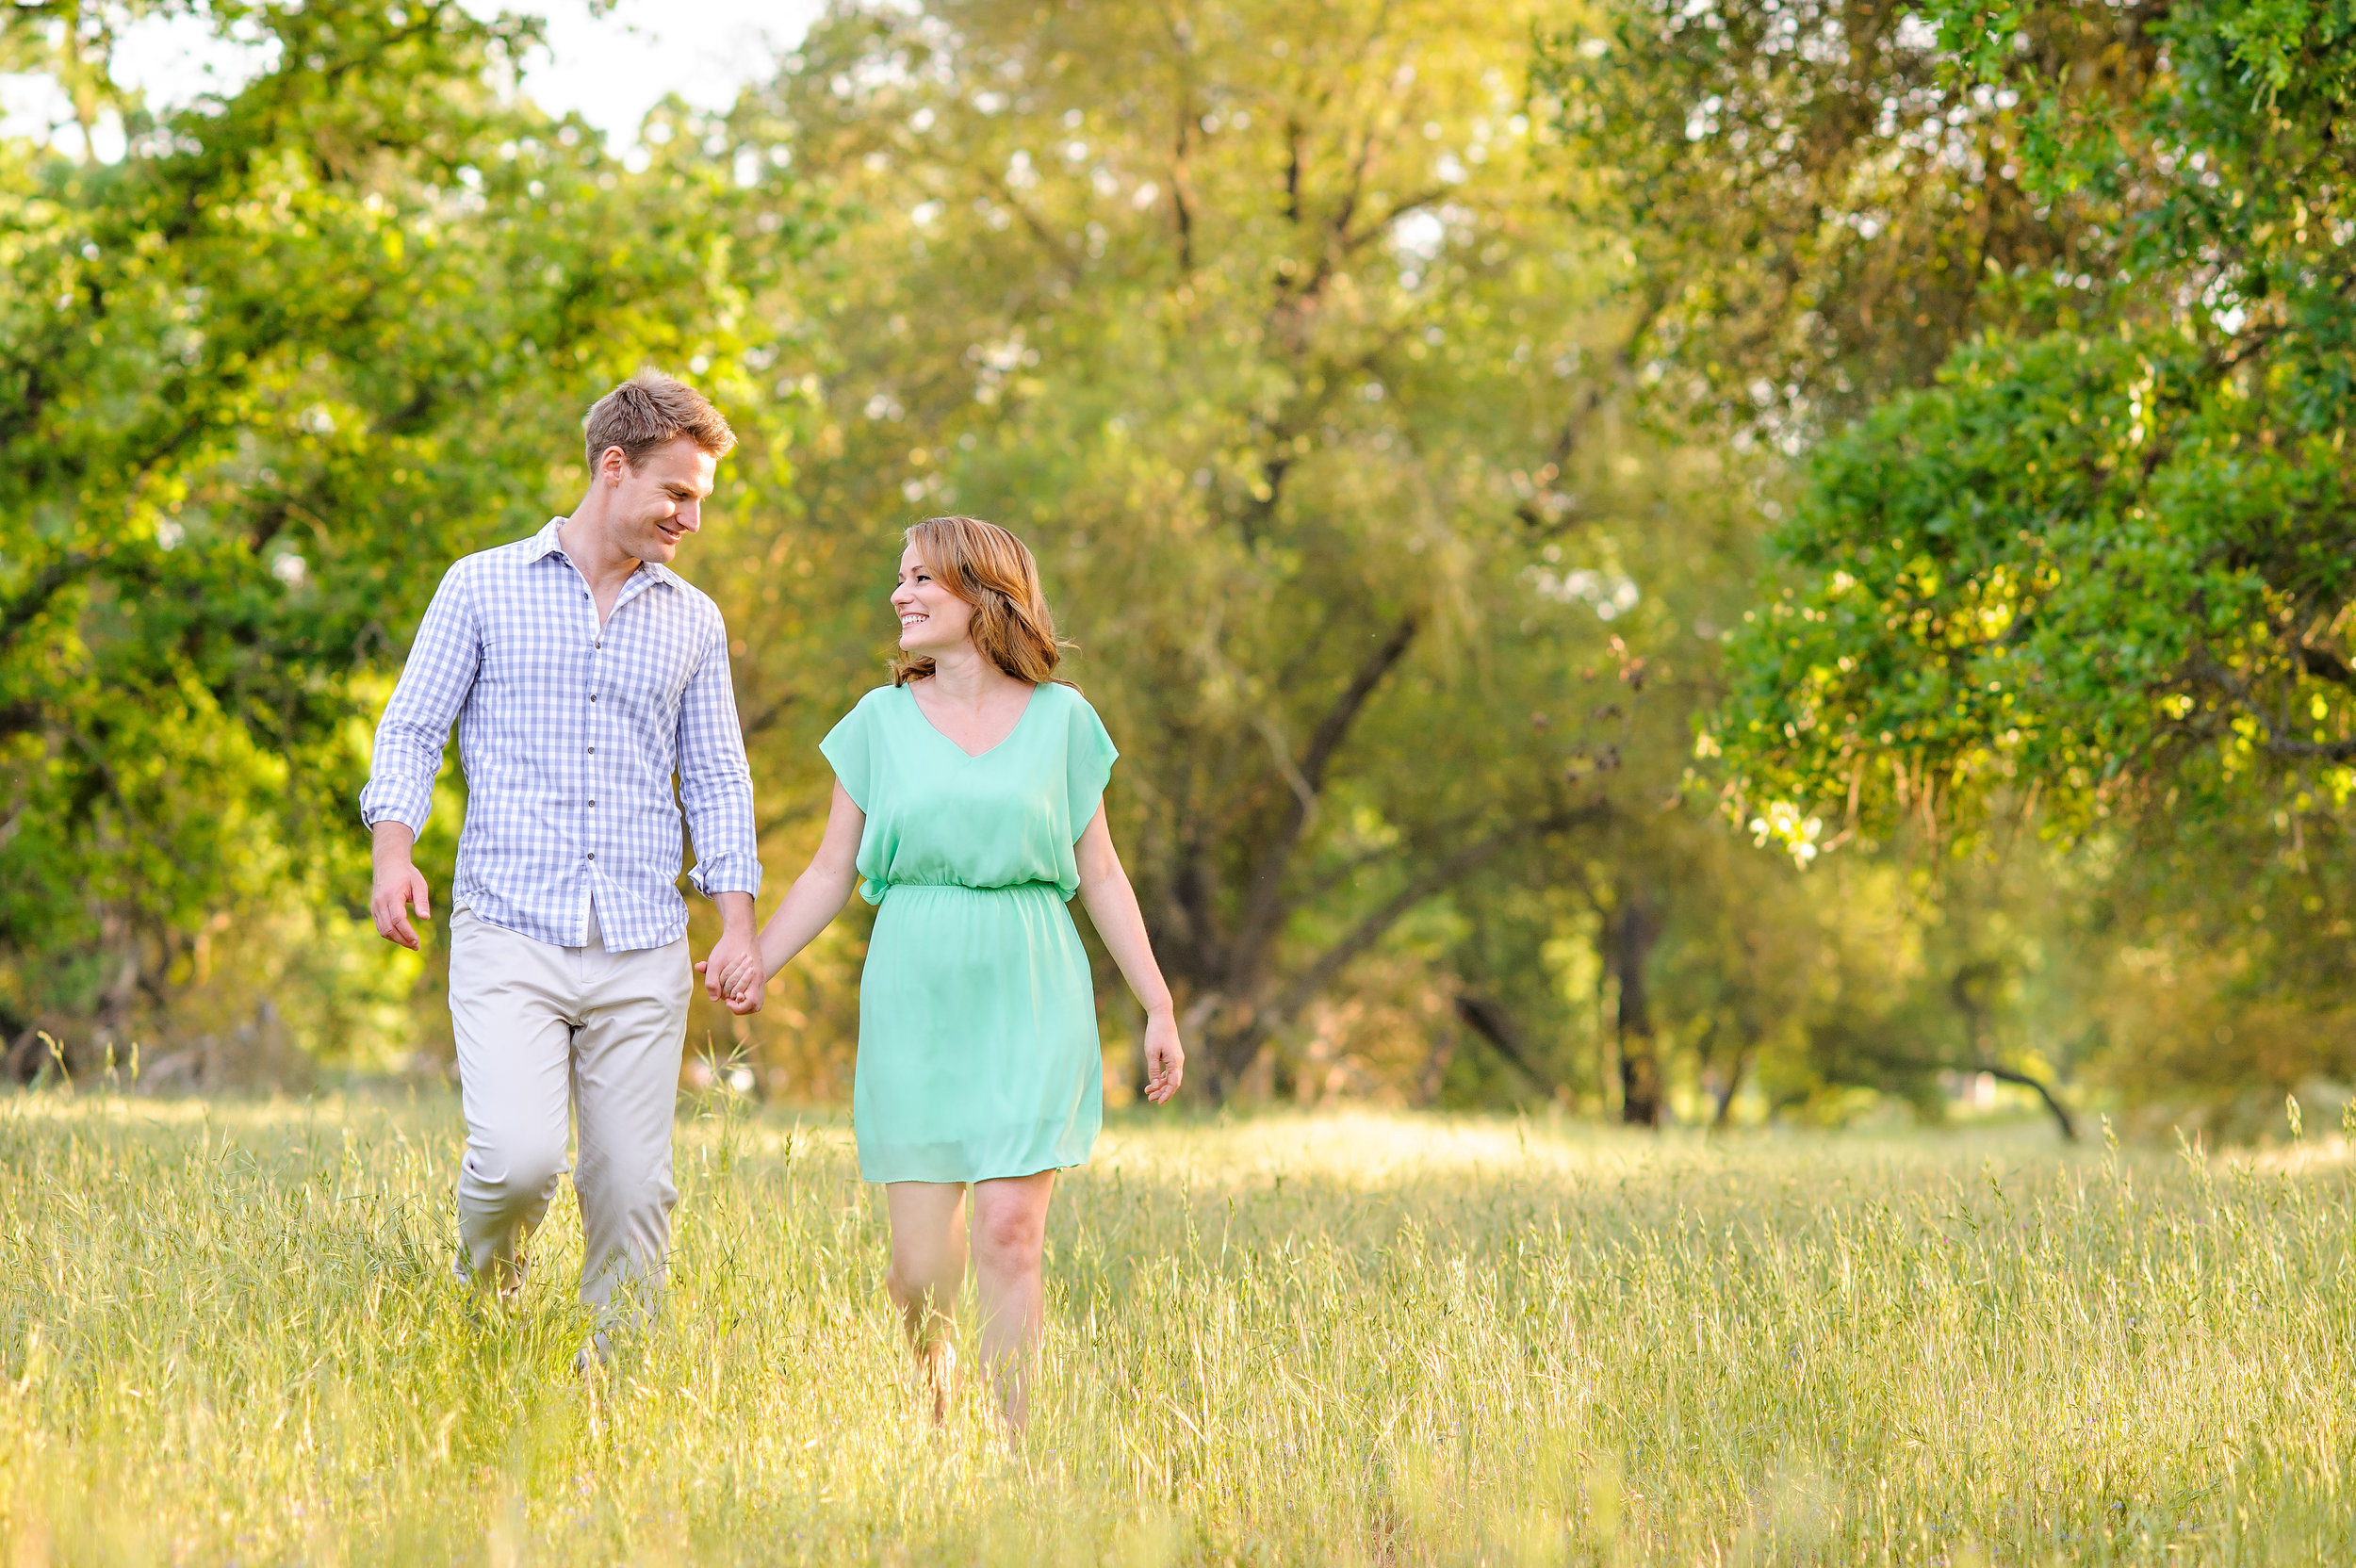 jennifer-dave-005-sacramento-engagement-wedding-photographer-katherine-nicole-photography.JPG